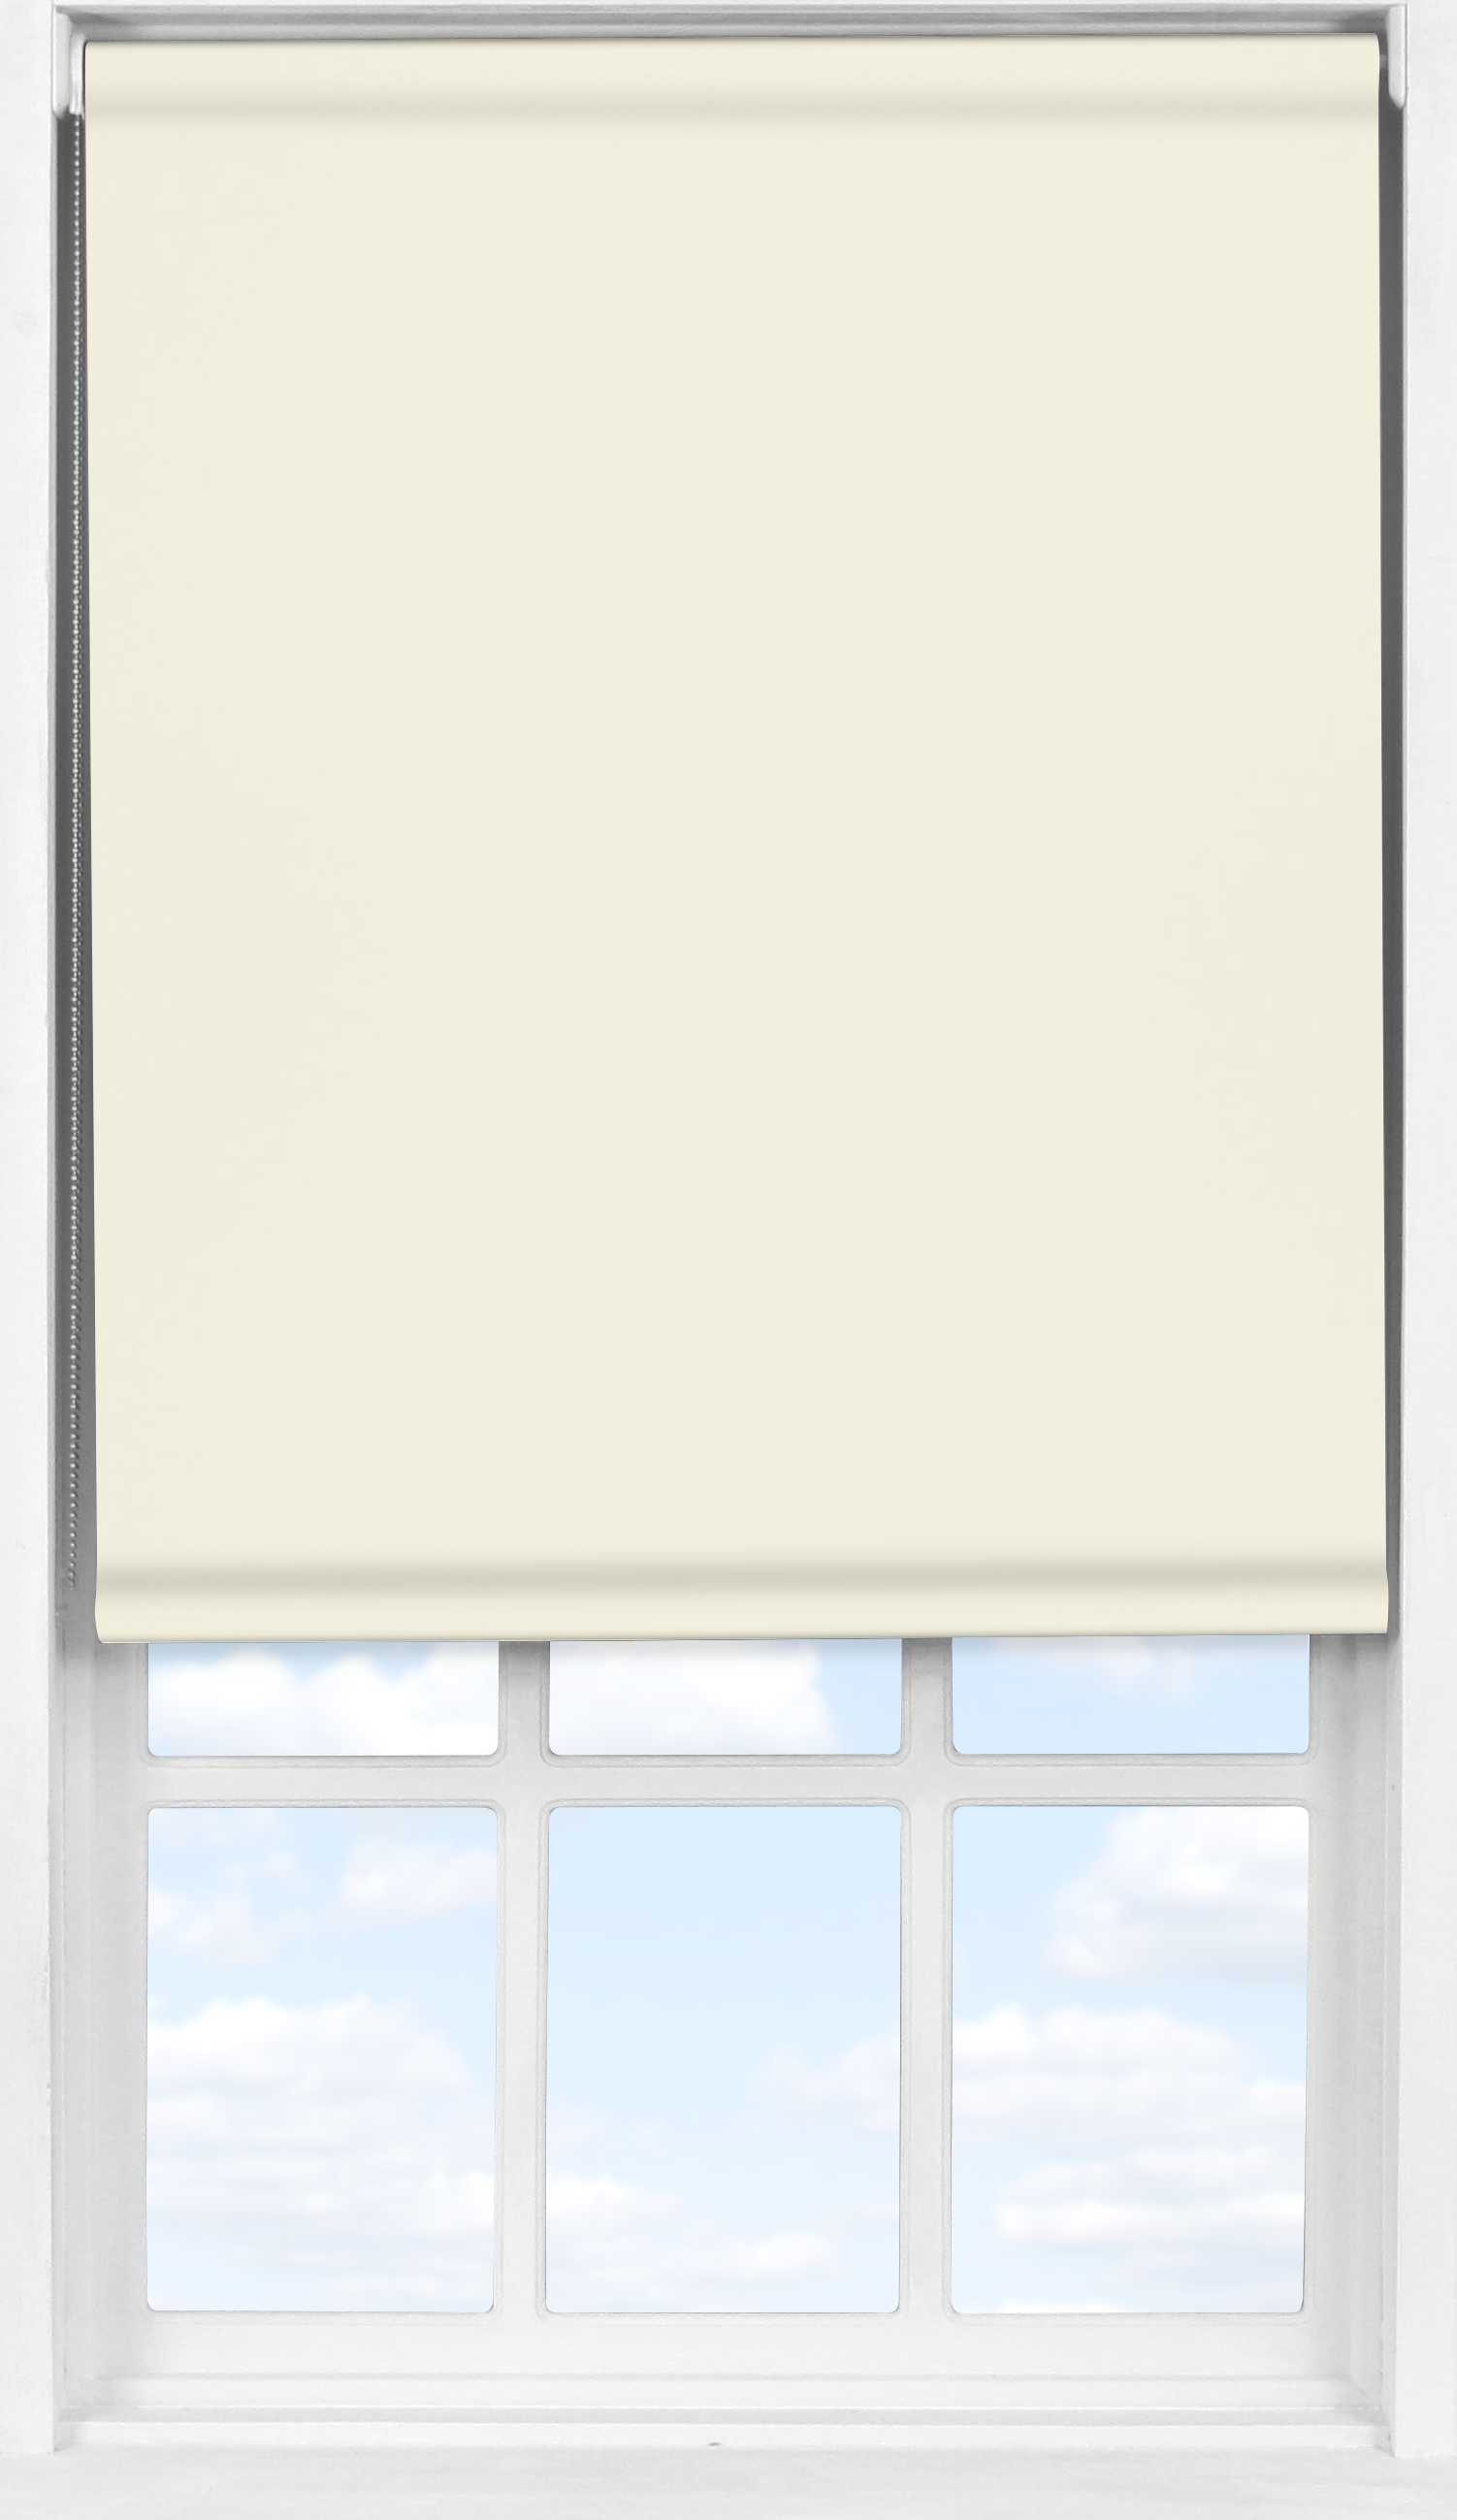 Easifit Roller Blind in Latte Translucent